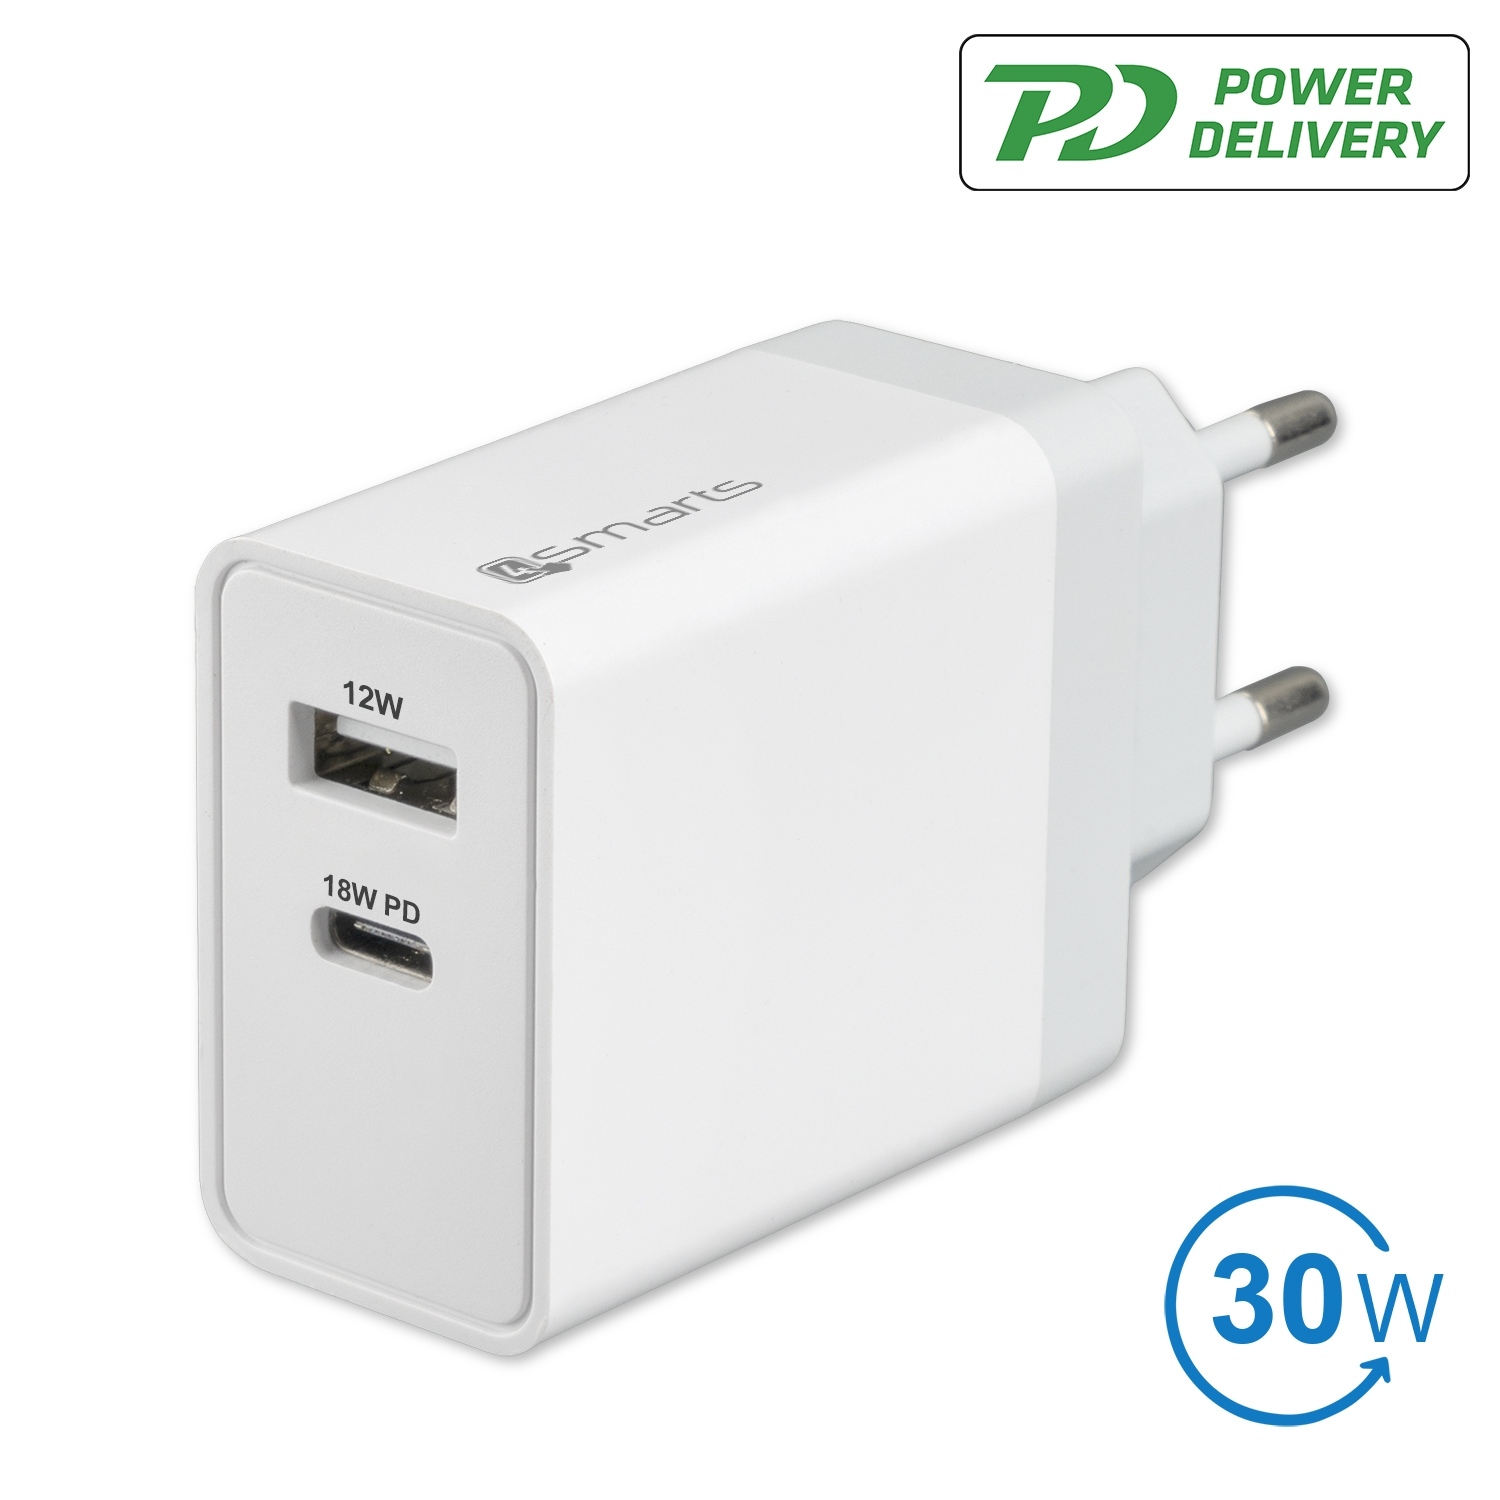 5v 2a fast ac adapter home wall charger white for samsung galaxy tab a 9 7 8 0 jewishfilm org 5v 2a fast ac adapter home wall charger